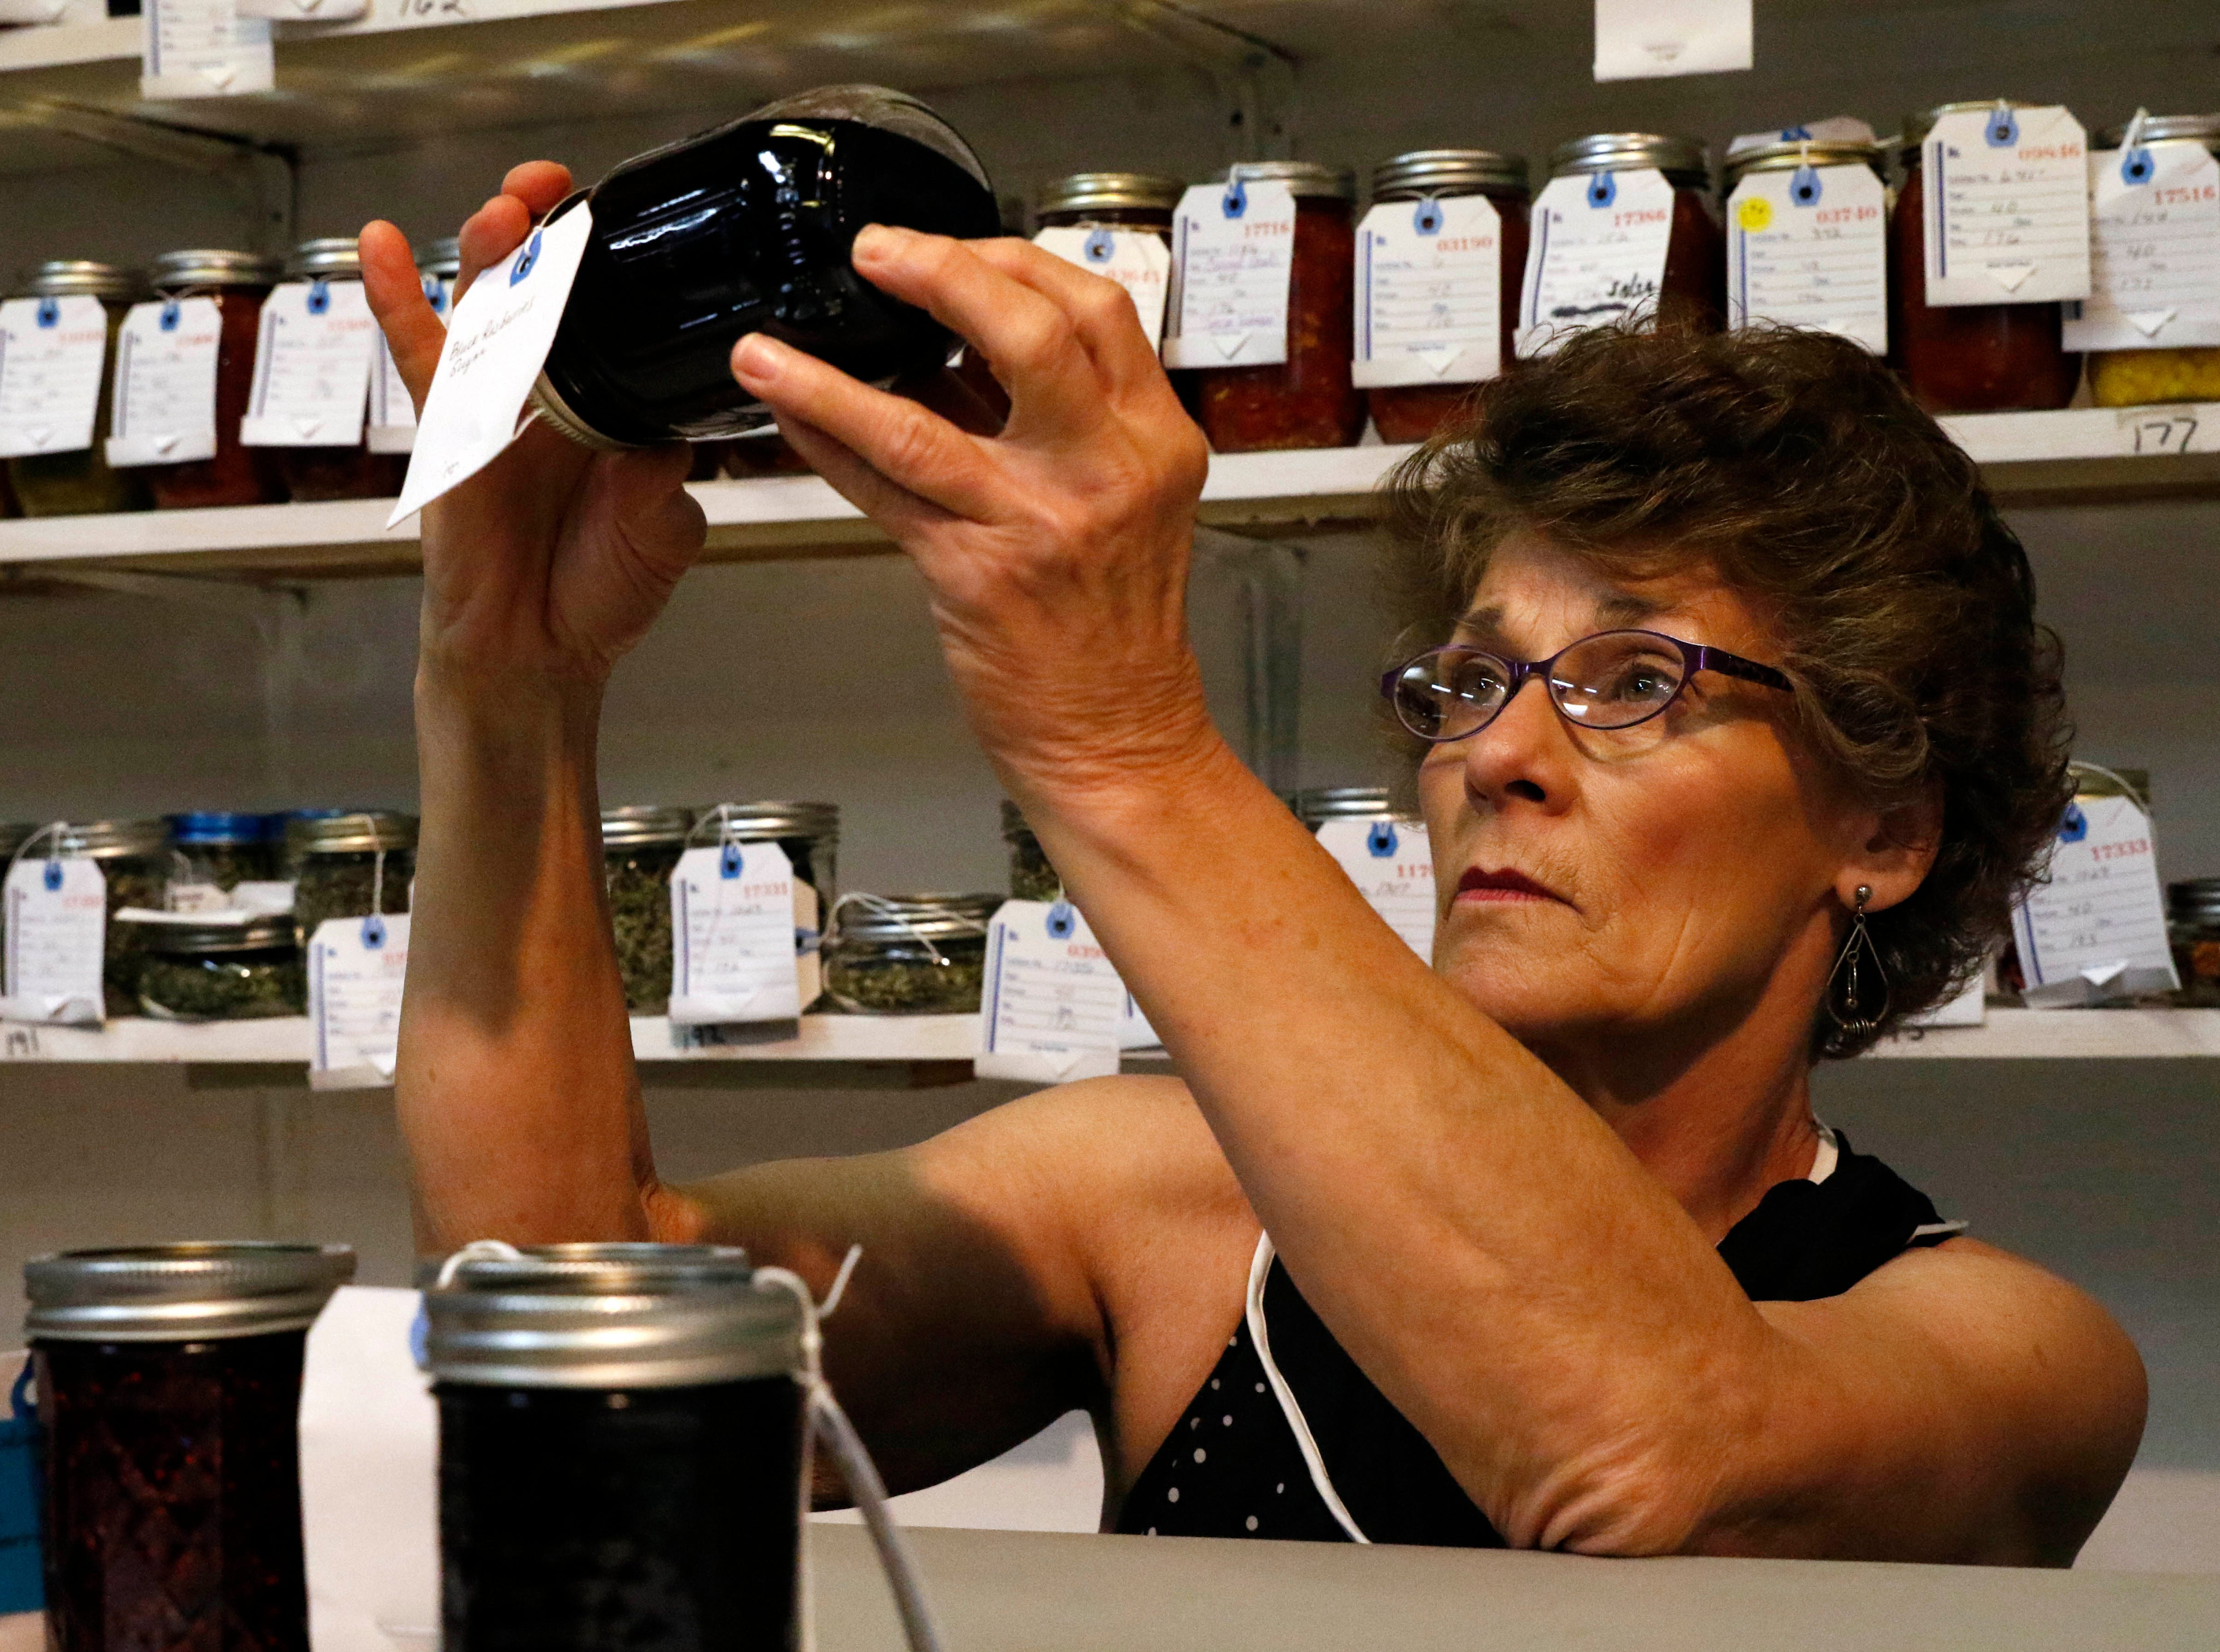 Candy Shuster, from Somerset, judges jars of jam Monday morning, Oct. 8, 2018, in the Art Hall at the Fairfield County Fair in Lancaster. Shuster, a retired Ohio State University extension educator in Perry County, was judging canned goods.